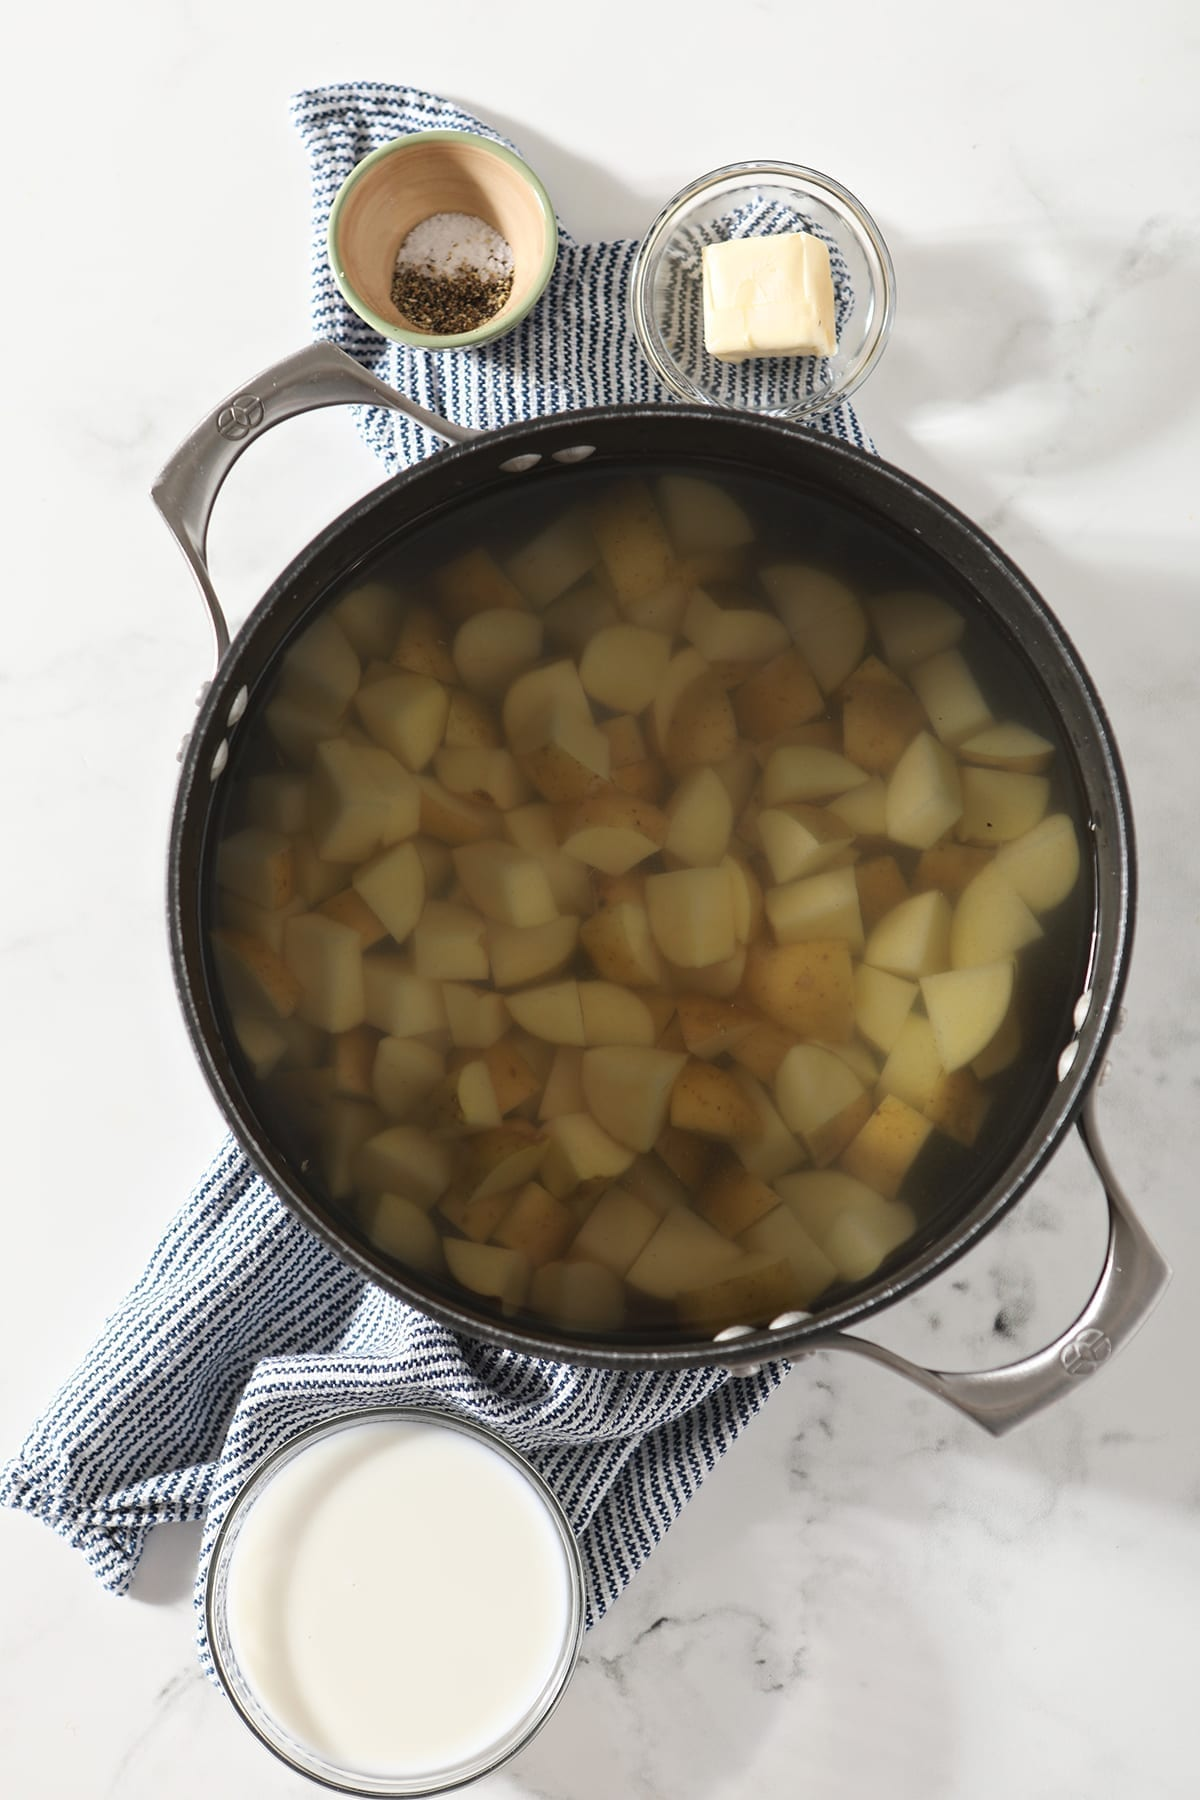 A large pot holding chopped potatoes sits next to other mashed potato ingredients while sitting on top of a blue and white striped towel